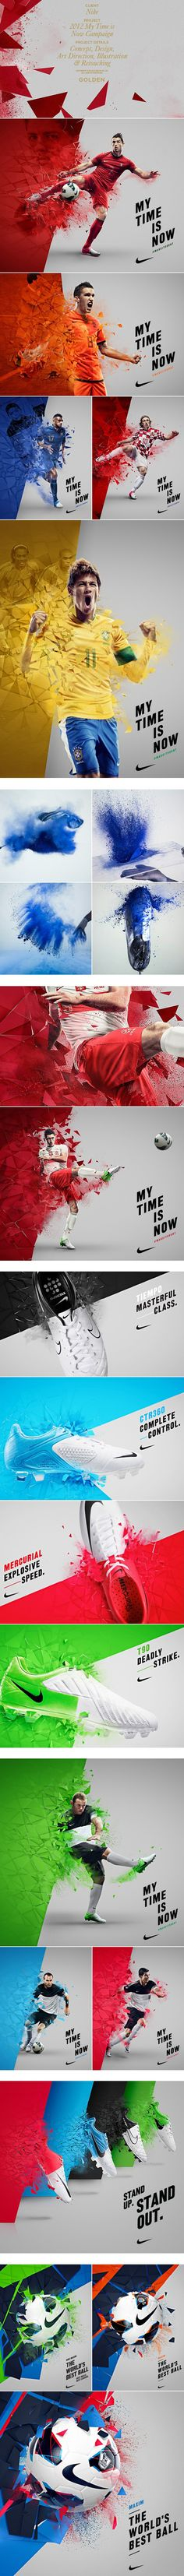 Nike 2012 My Time Is Now Campaign #correres #deporte #sport #fitness #running